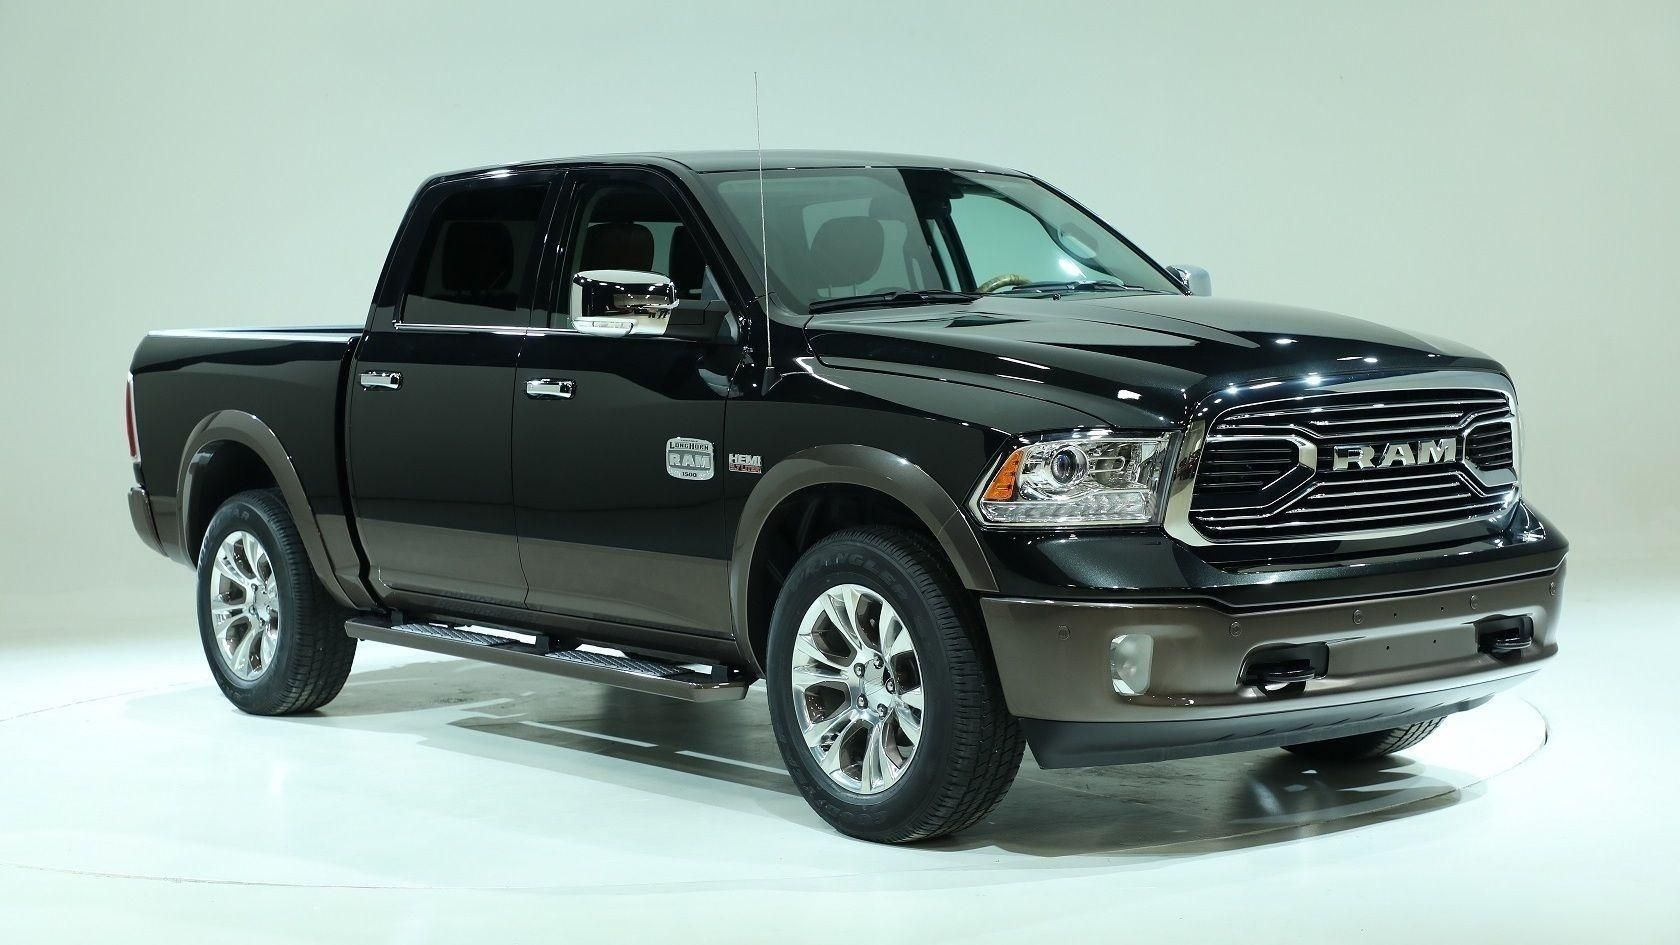 Dodge Ram 1500 Diesel >> Reasons To Ride With Ram Miami Lakes Ram Blog With 2019